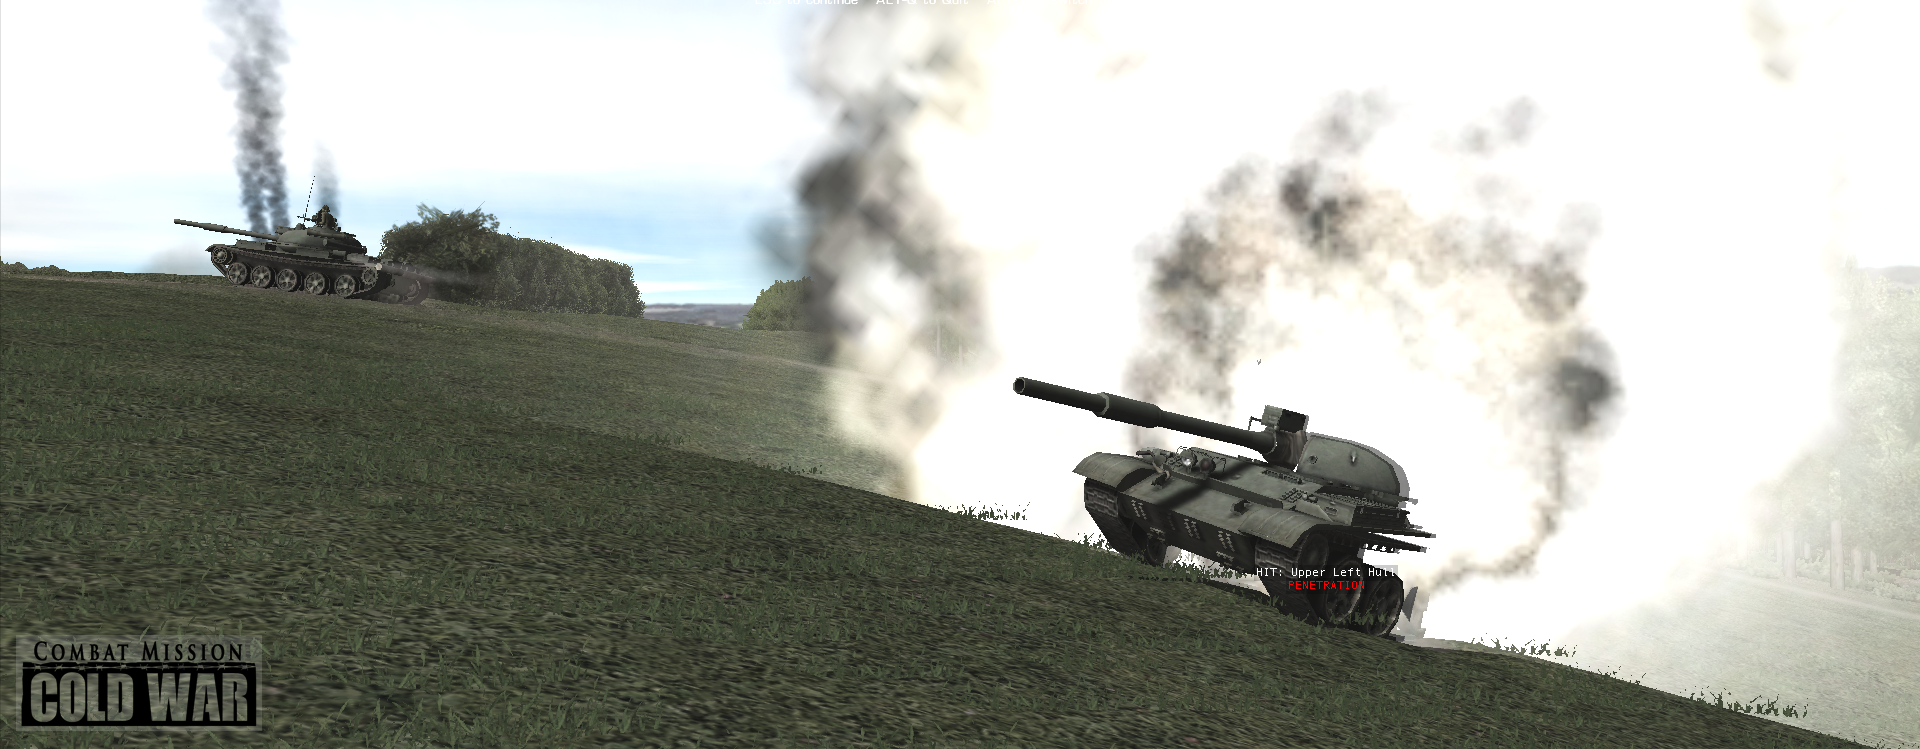 T23_A2.PNG